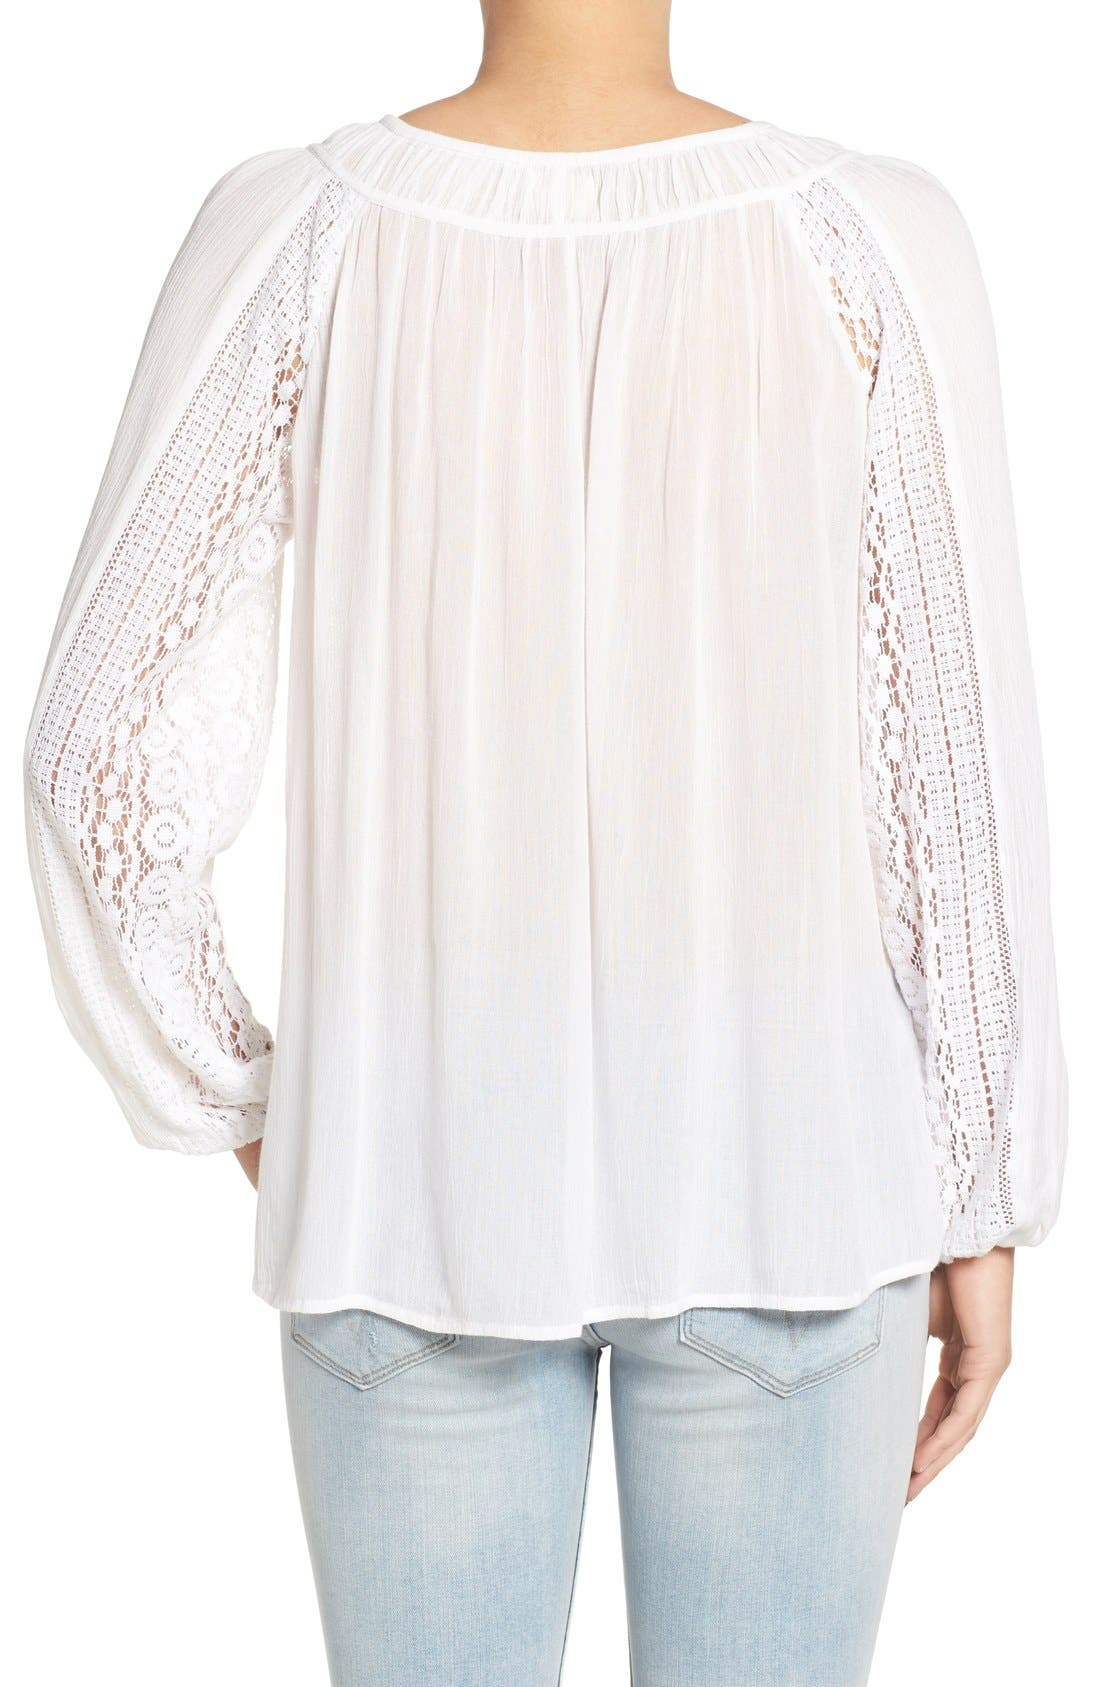 Alternate Image 2  - O'Neill 'Holland' Embroidered Woven Top